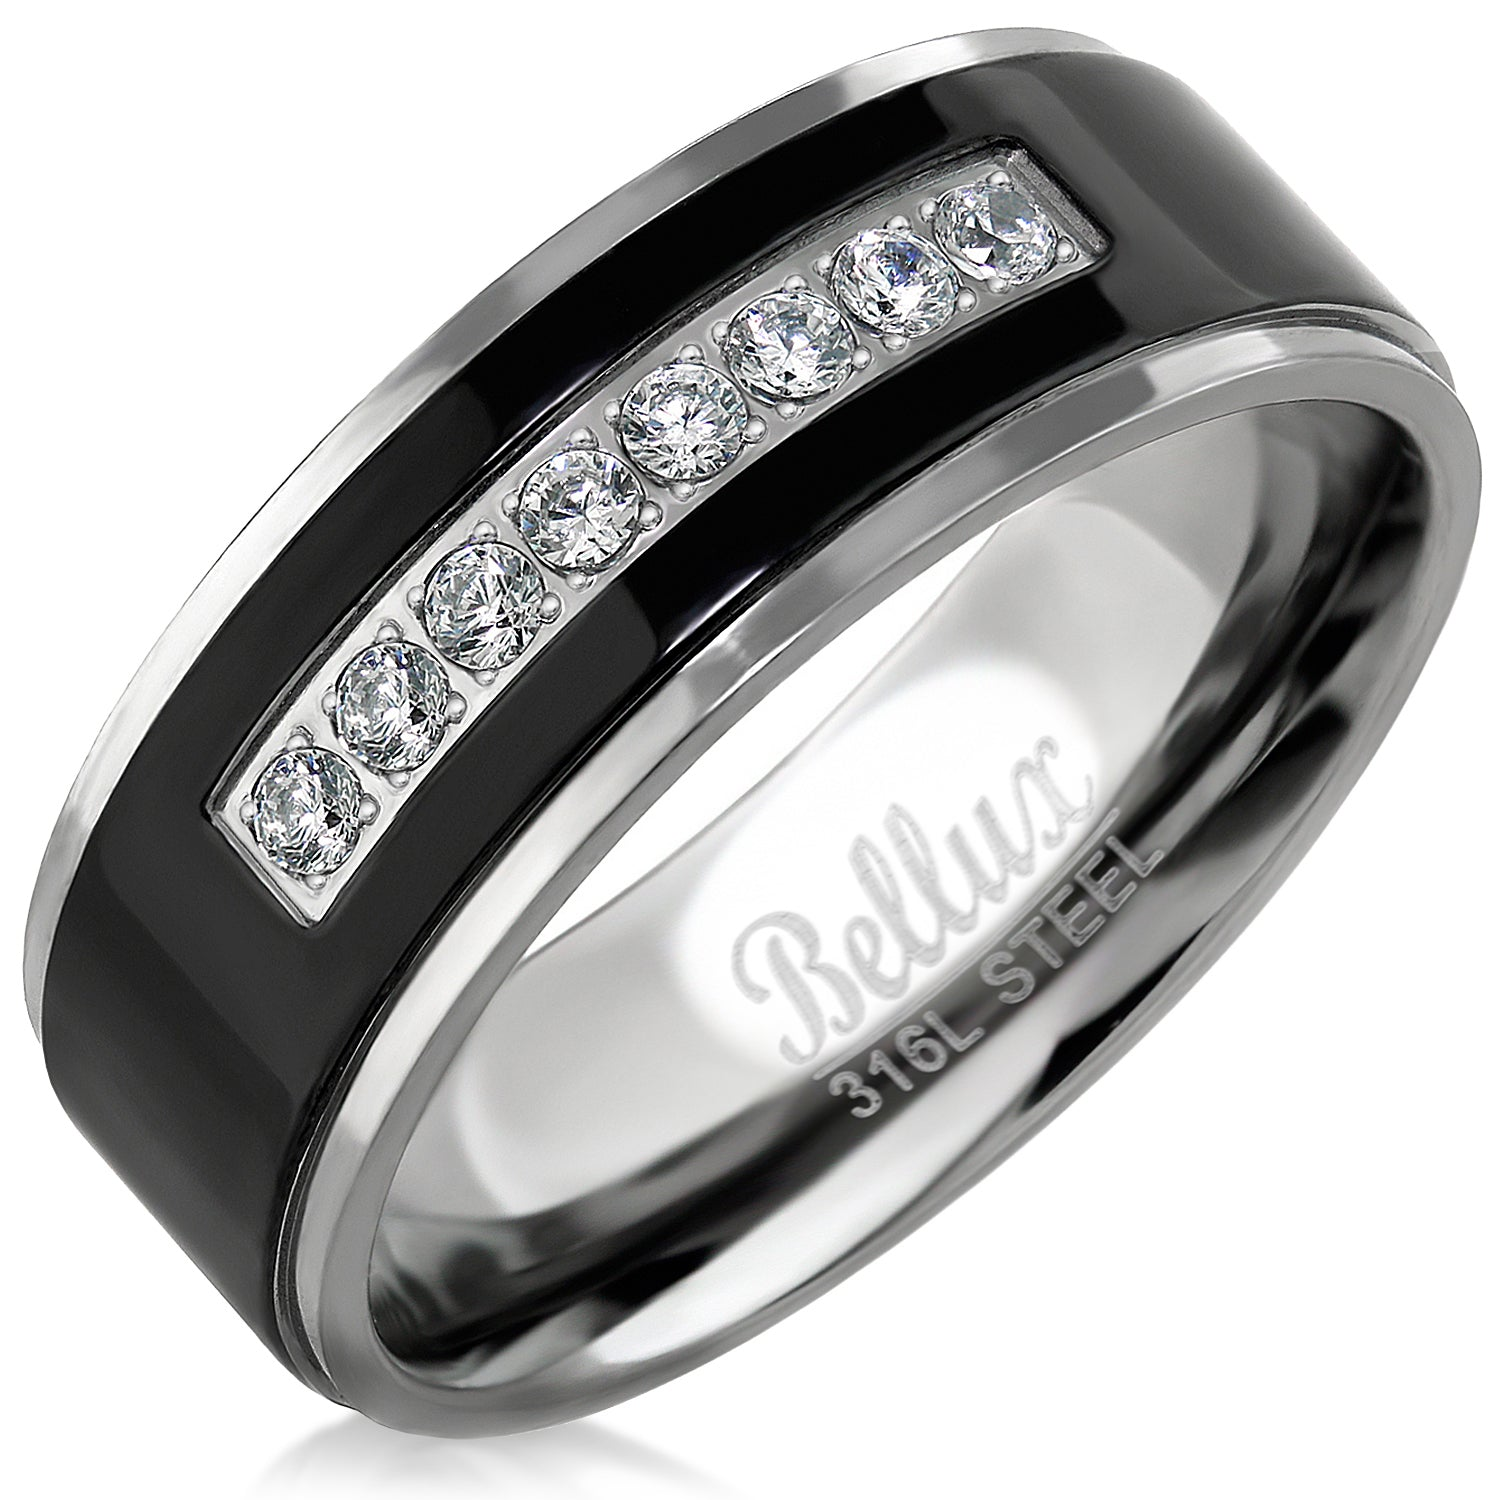 Mens Wedding Bands Stainless Steel Promise Rings for Him Silver Black Comfort-Fit Engagement Ring